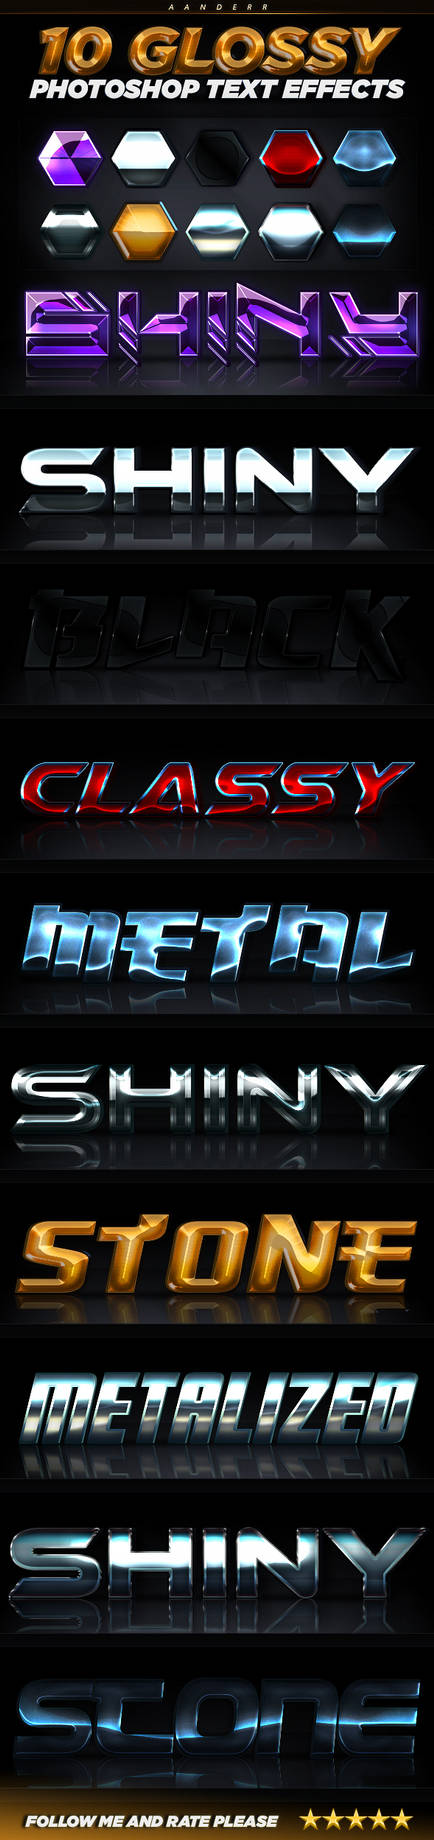 10 Glossy Photoshop Text Effects (Professional)